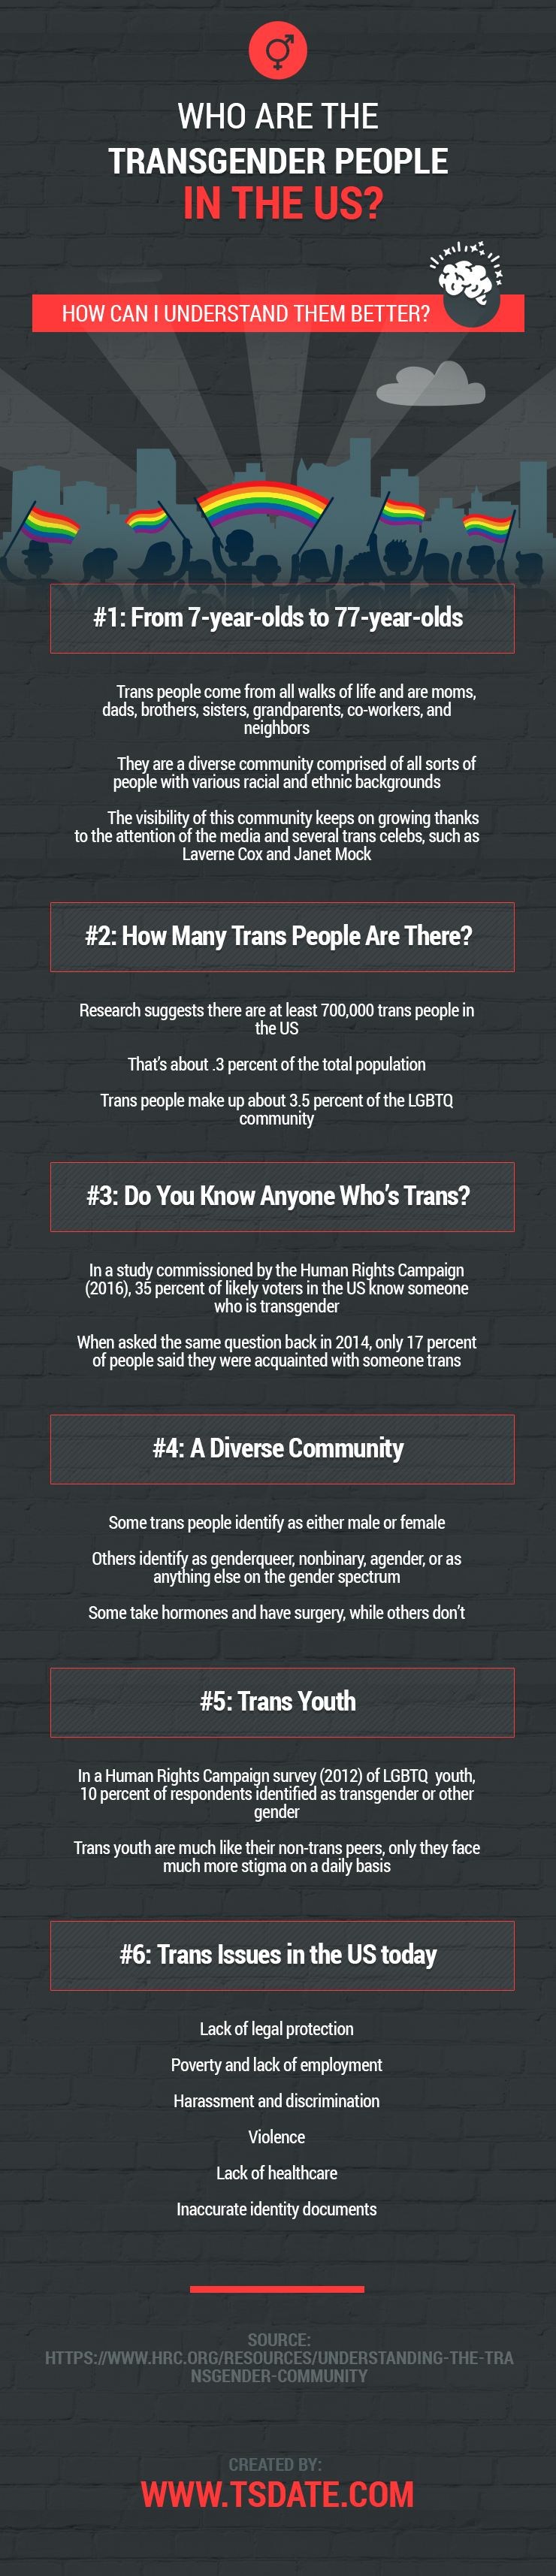 Who Are The Transgender People in the US